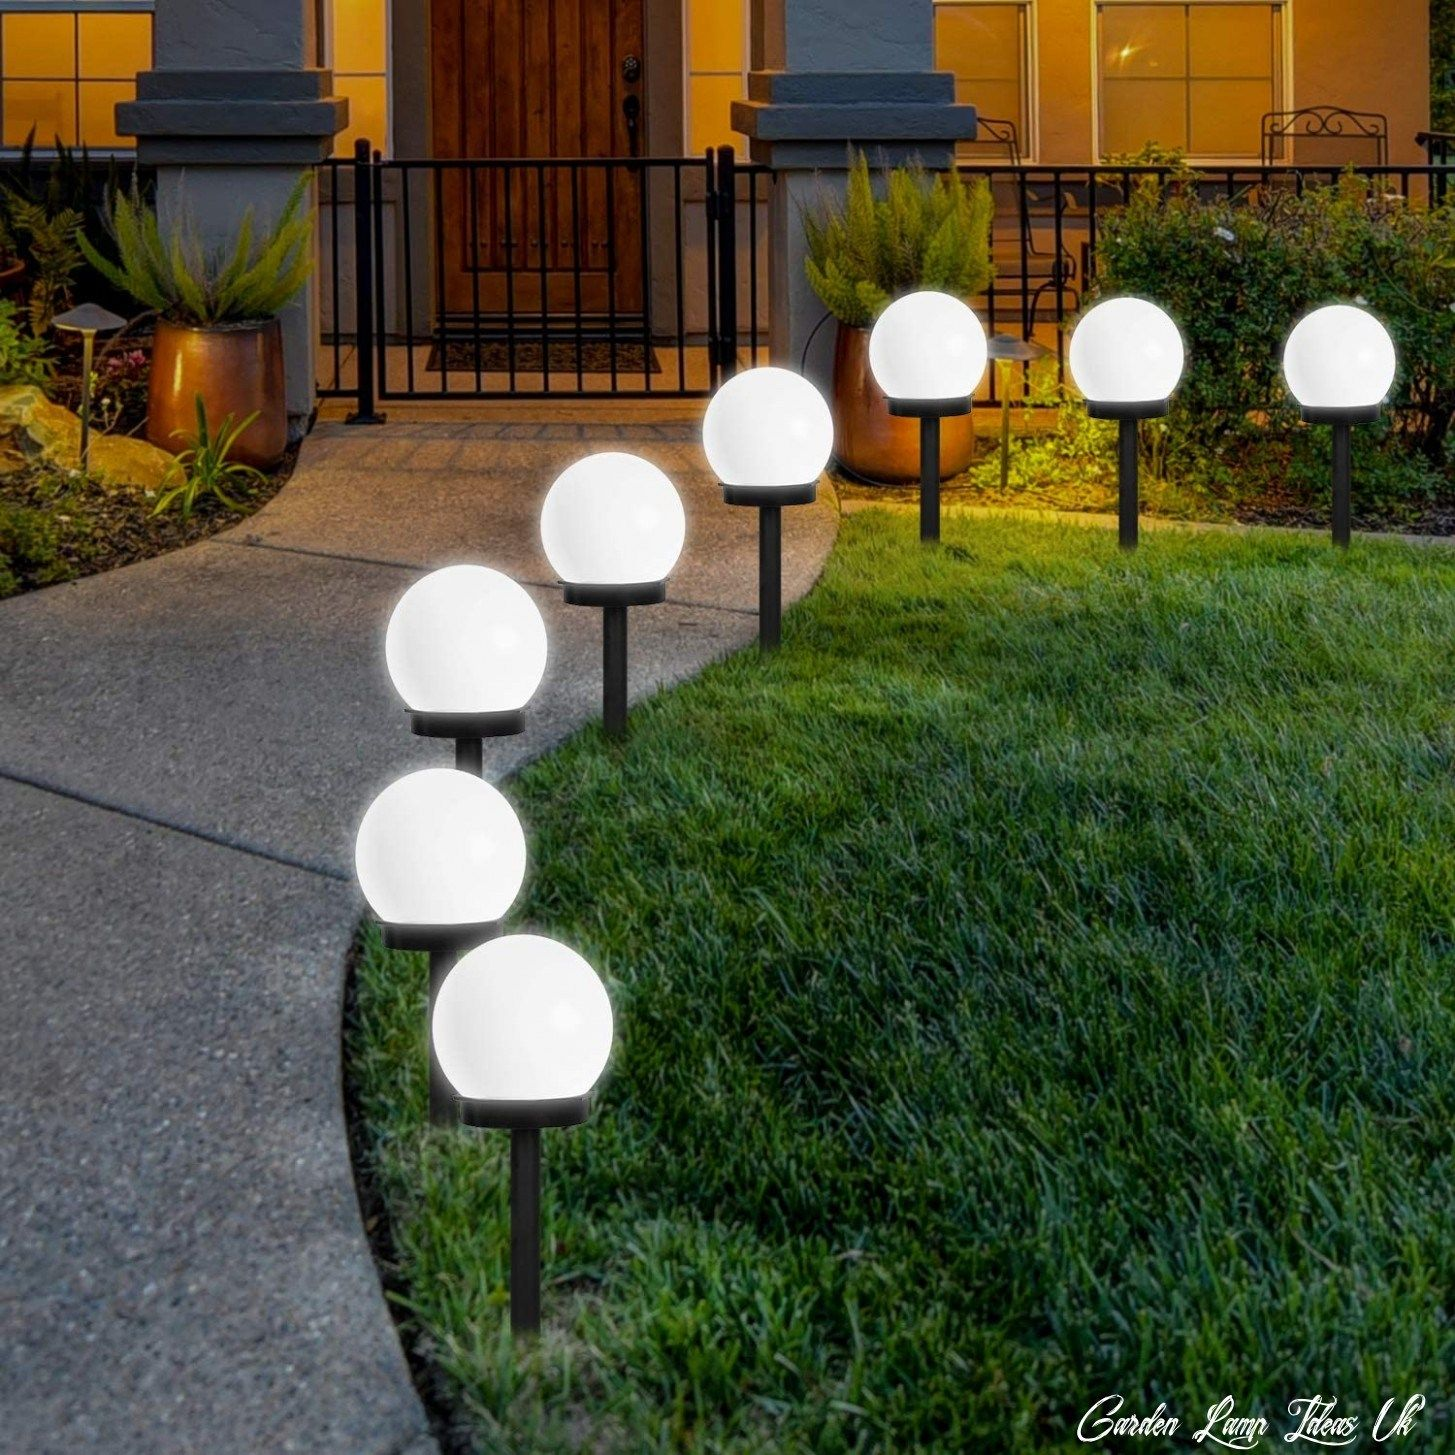 11 Garden Lamp Ideas Uk In 2020 Outdoor Globe Lights Solar Fence Lights Solar Lights Garden